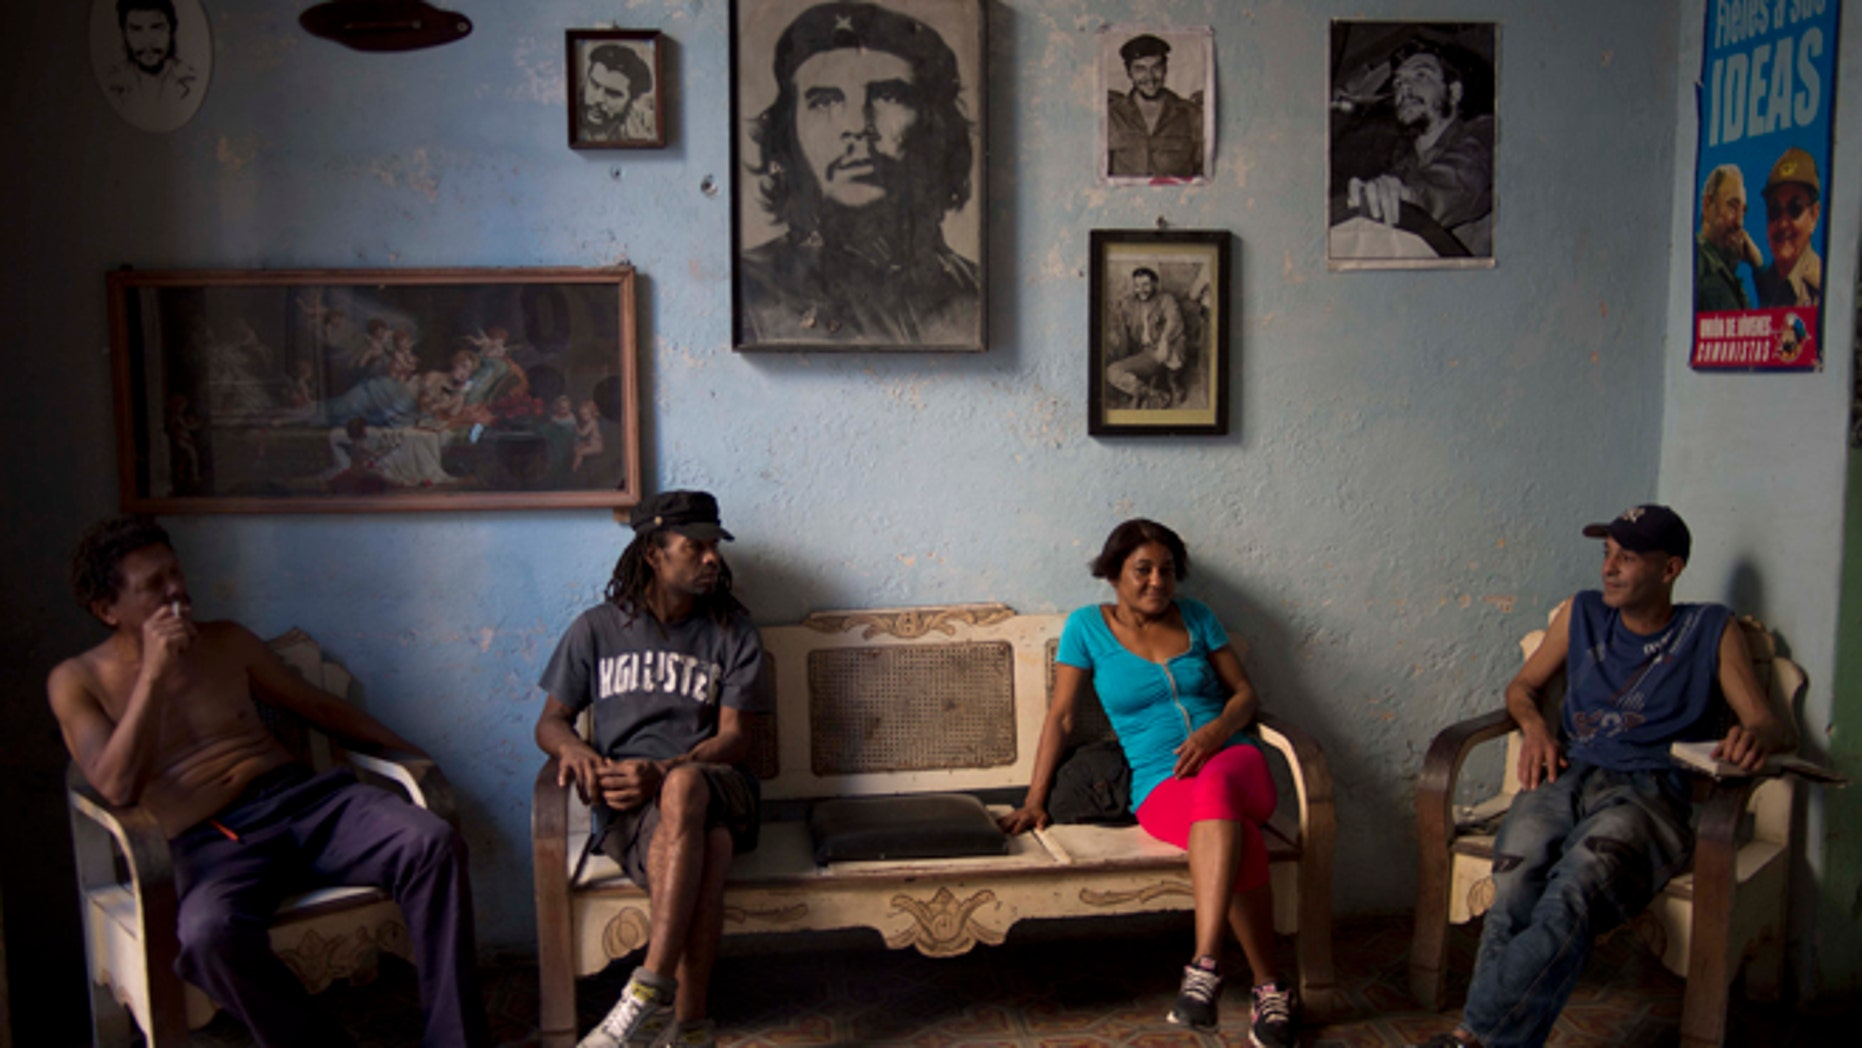 Roberto Alvarez, 47, right, chats with friends backdropped by a wall decorated with images of Cuban revolutionary heroes, Che Guevara, Fidel Castro and his brother, President Raul Castro, in Havana, Cuba, Wednesday, Feb. 25, 2015. Any kind of benefit for the Cuban people, thatll be hard. said Alvarez when asked if the negotiations with the US would help. (AP Photo/Ramon Espinosa)